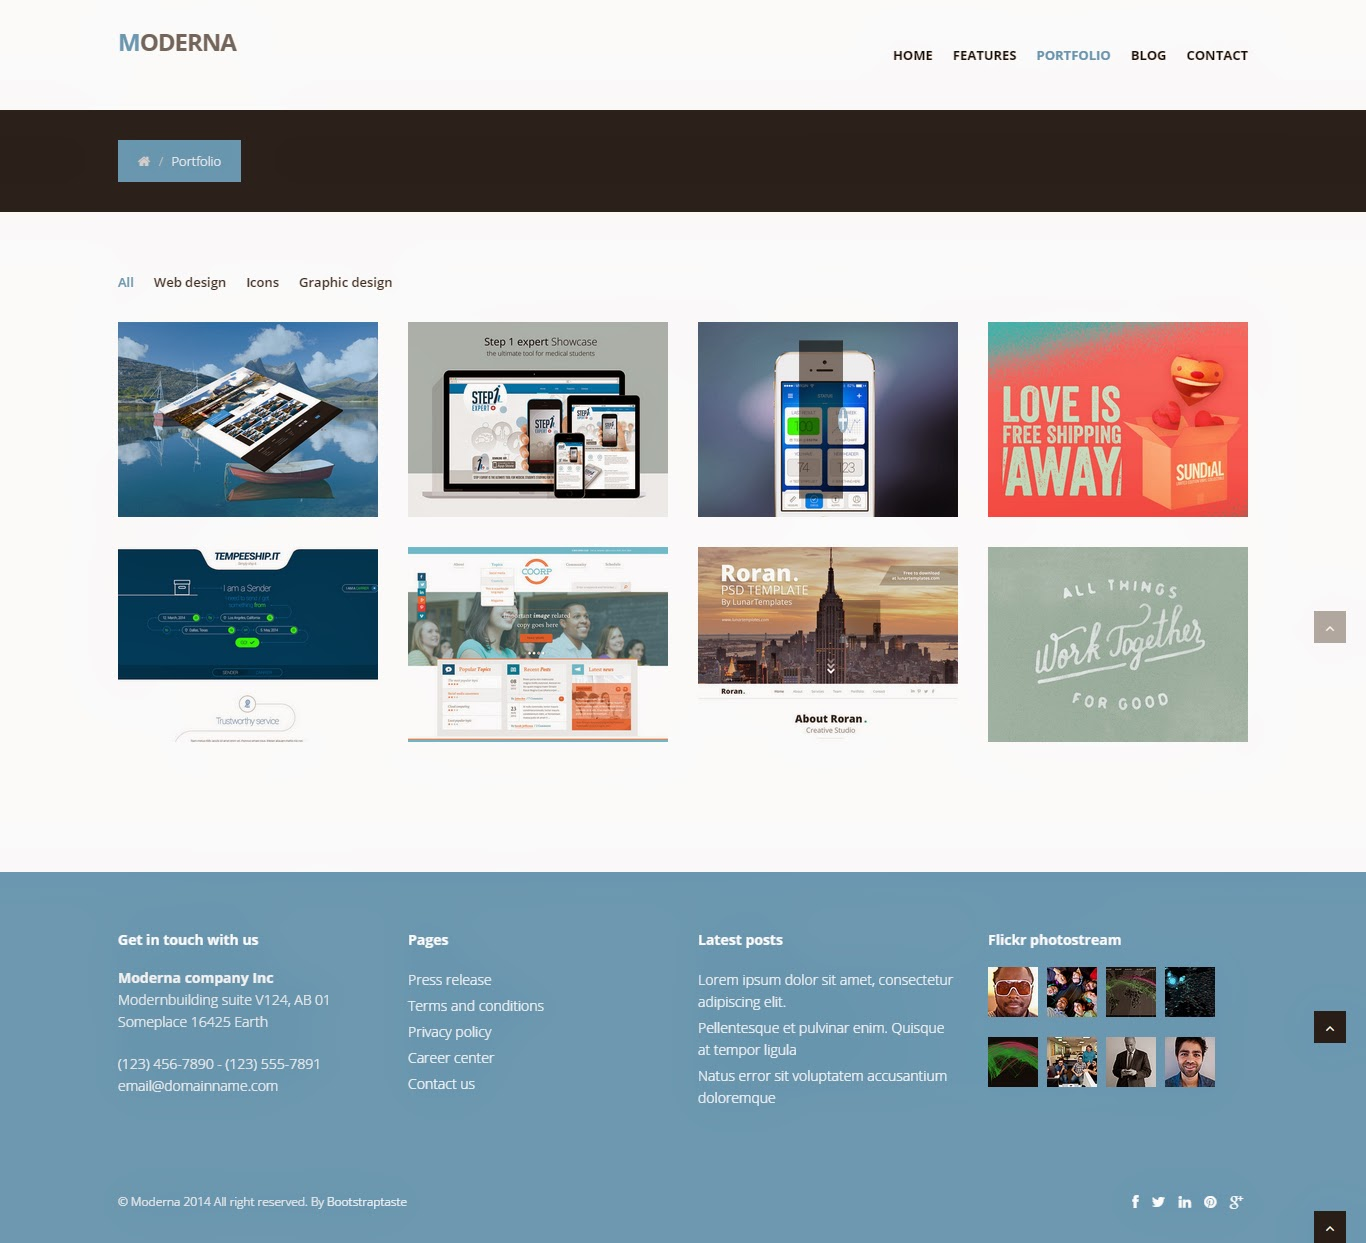 Website Templates Free Download Full: Responsive Website Templates Free Download